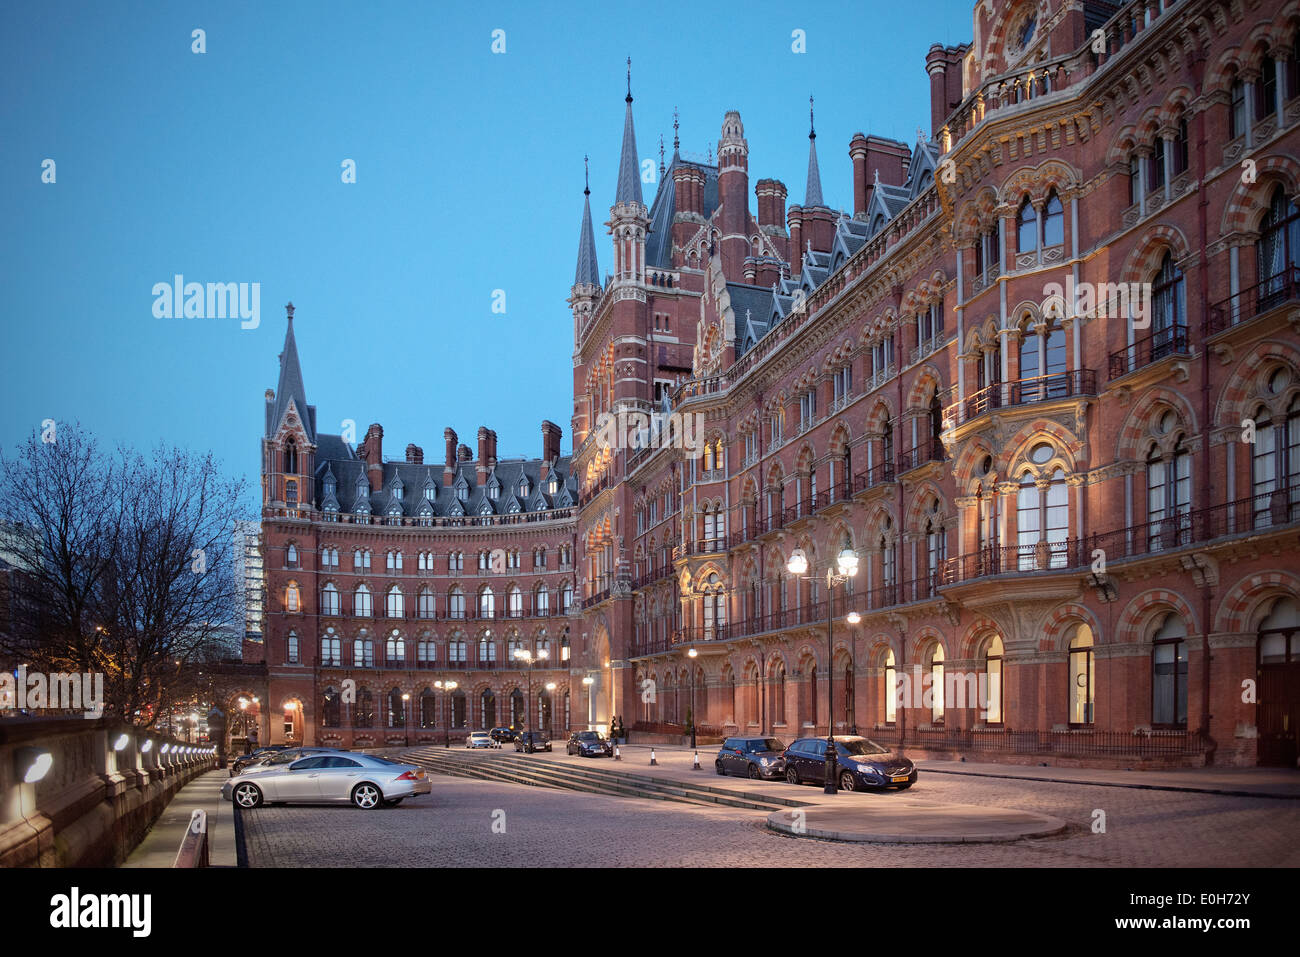 St. Pancras railway station, King's Cross St Pancras at dusk, City of London, England, United Kingdom, Europe - Stock Image